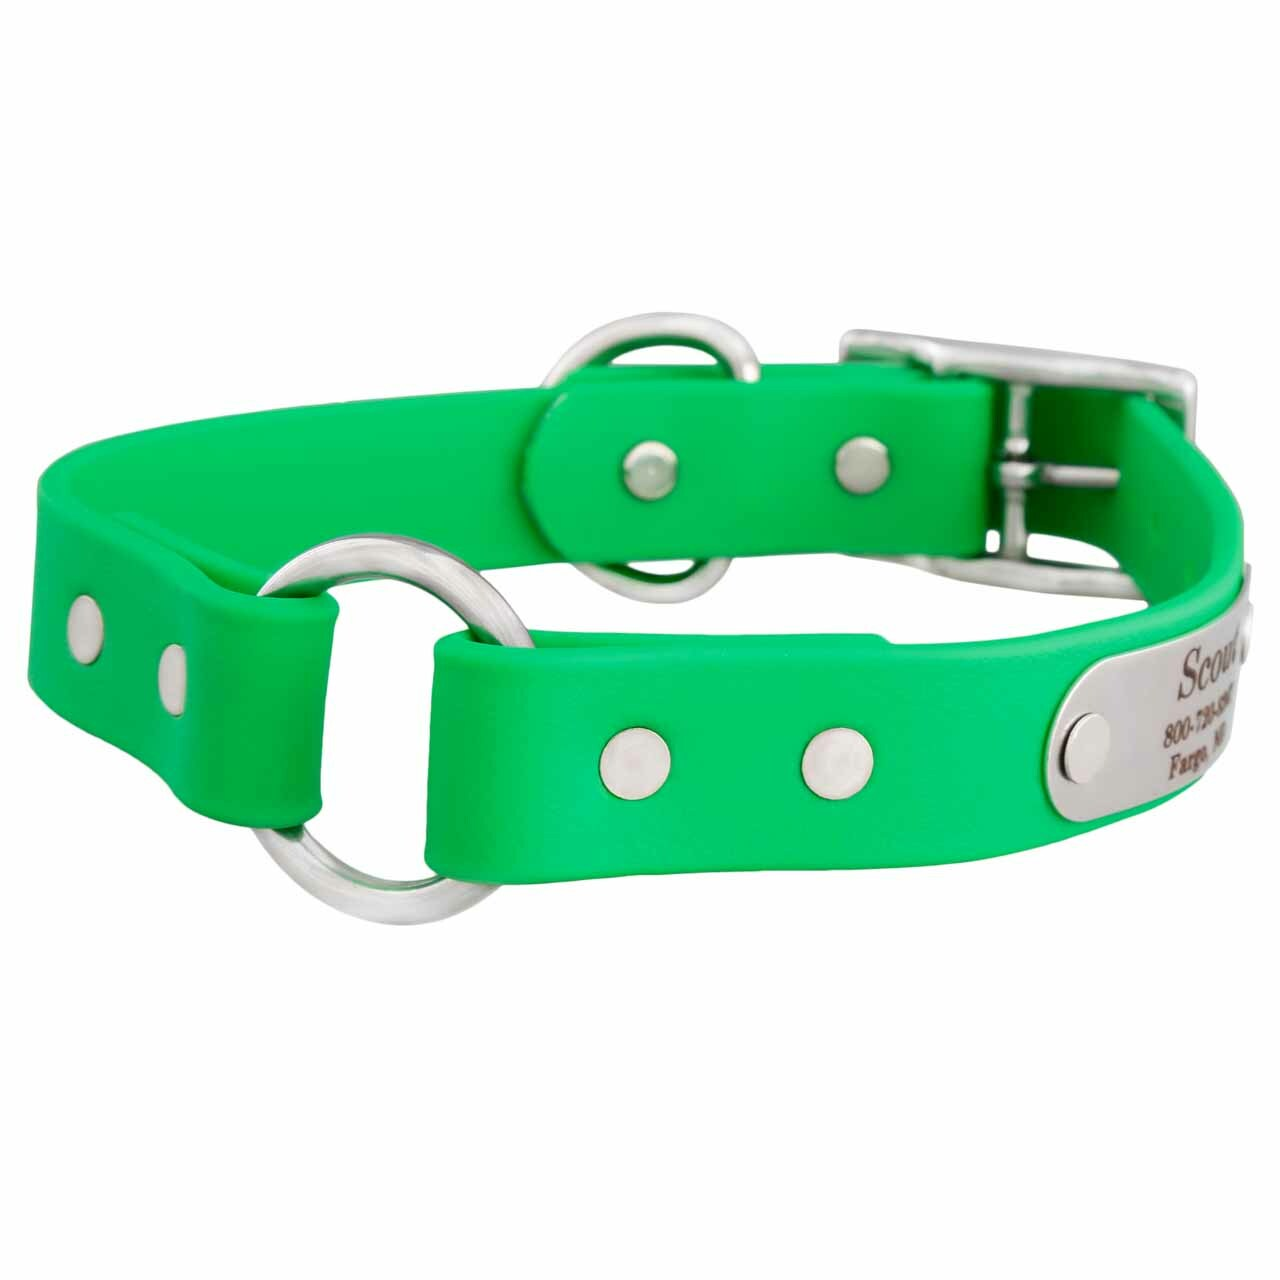 Waterproof Safety Collar with Personalized Nameplate Green